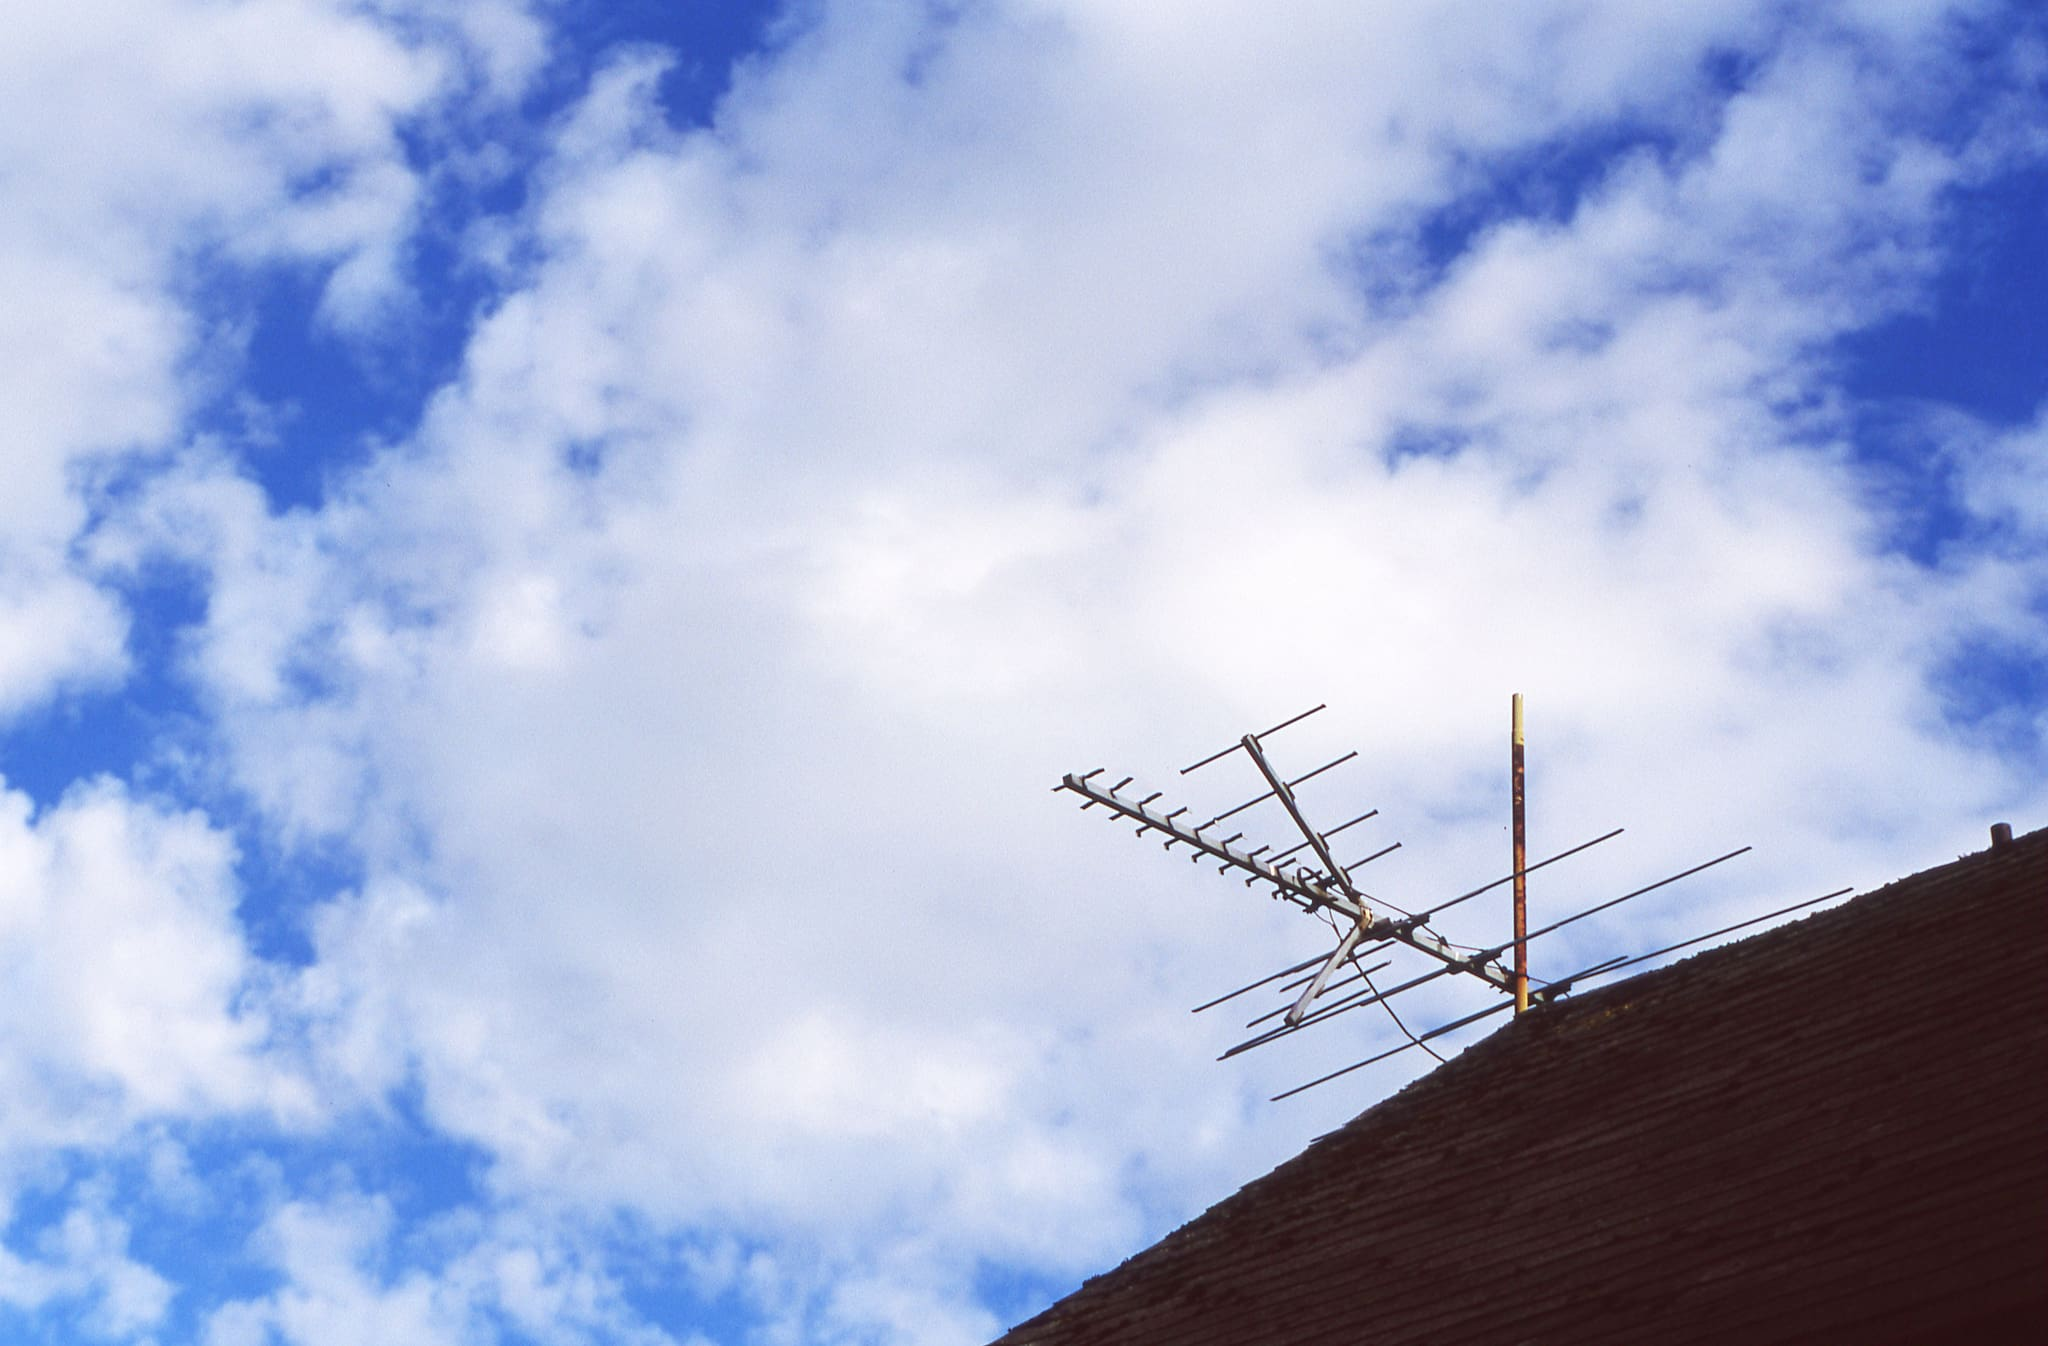 People Are Shocked That TV Signals Over The Air Are Free And